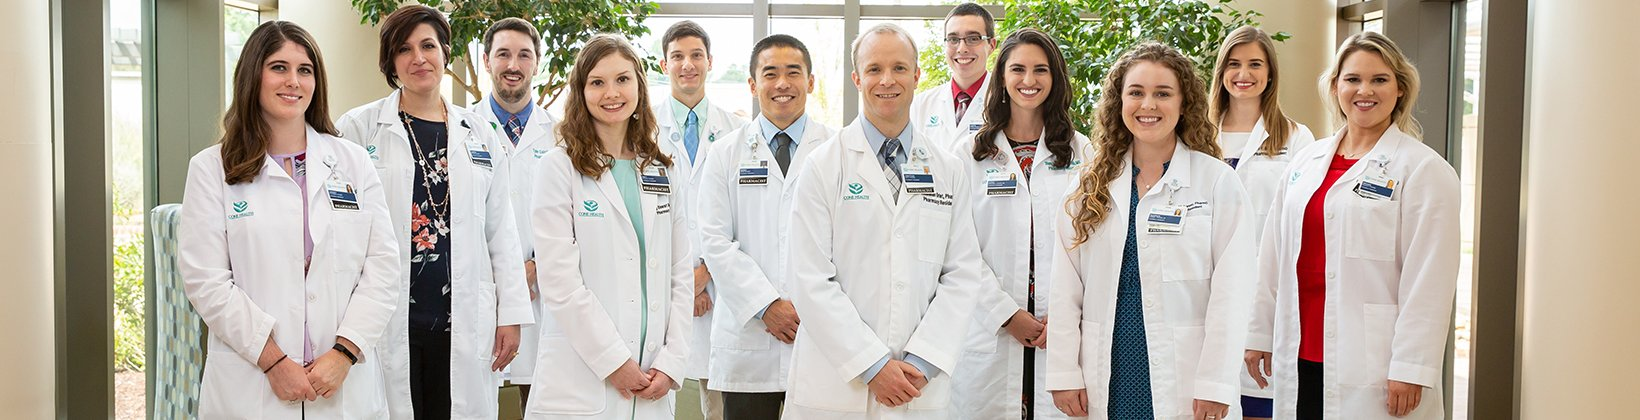 2019 Cone Health Pharmacy Residents